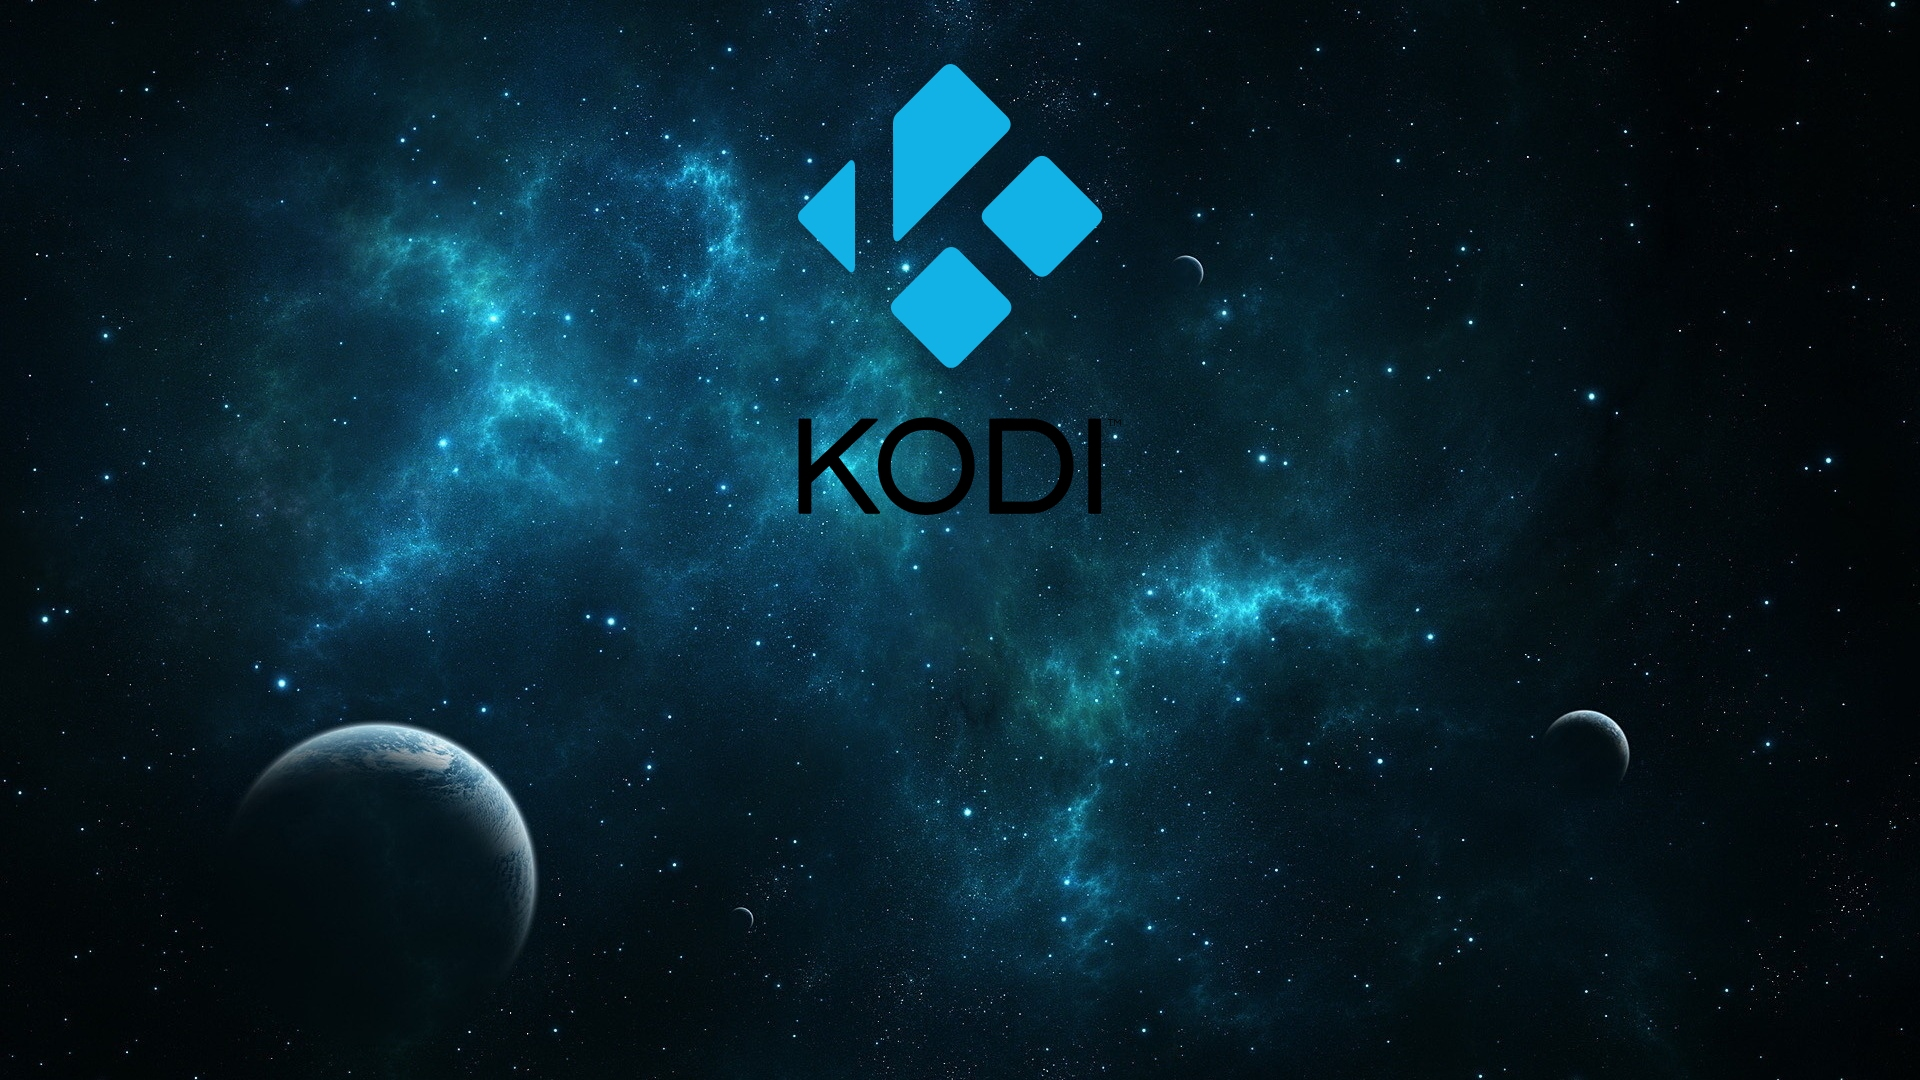 Kodi Wallpaper Official Collection 15 Wallpapers